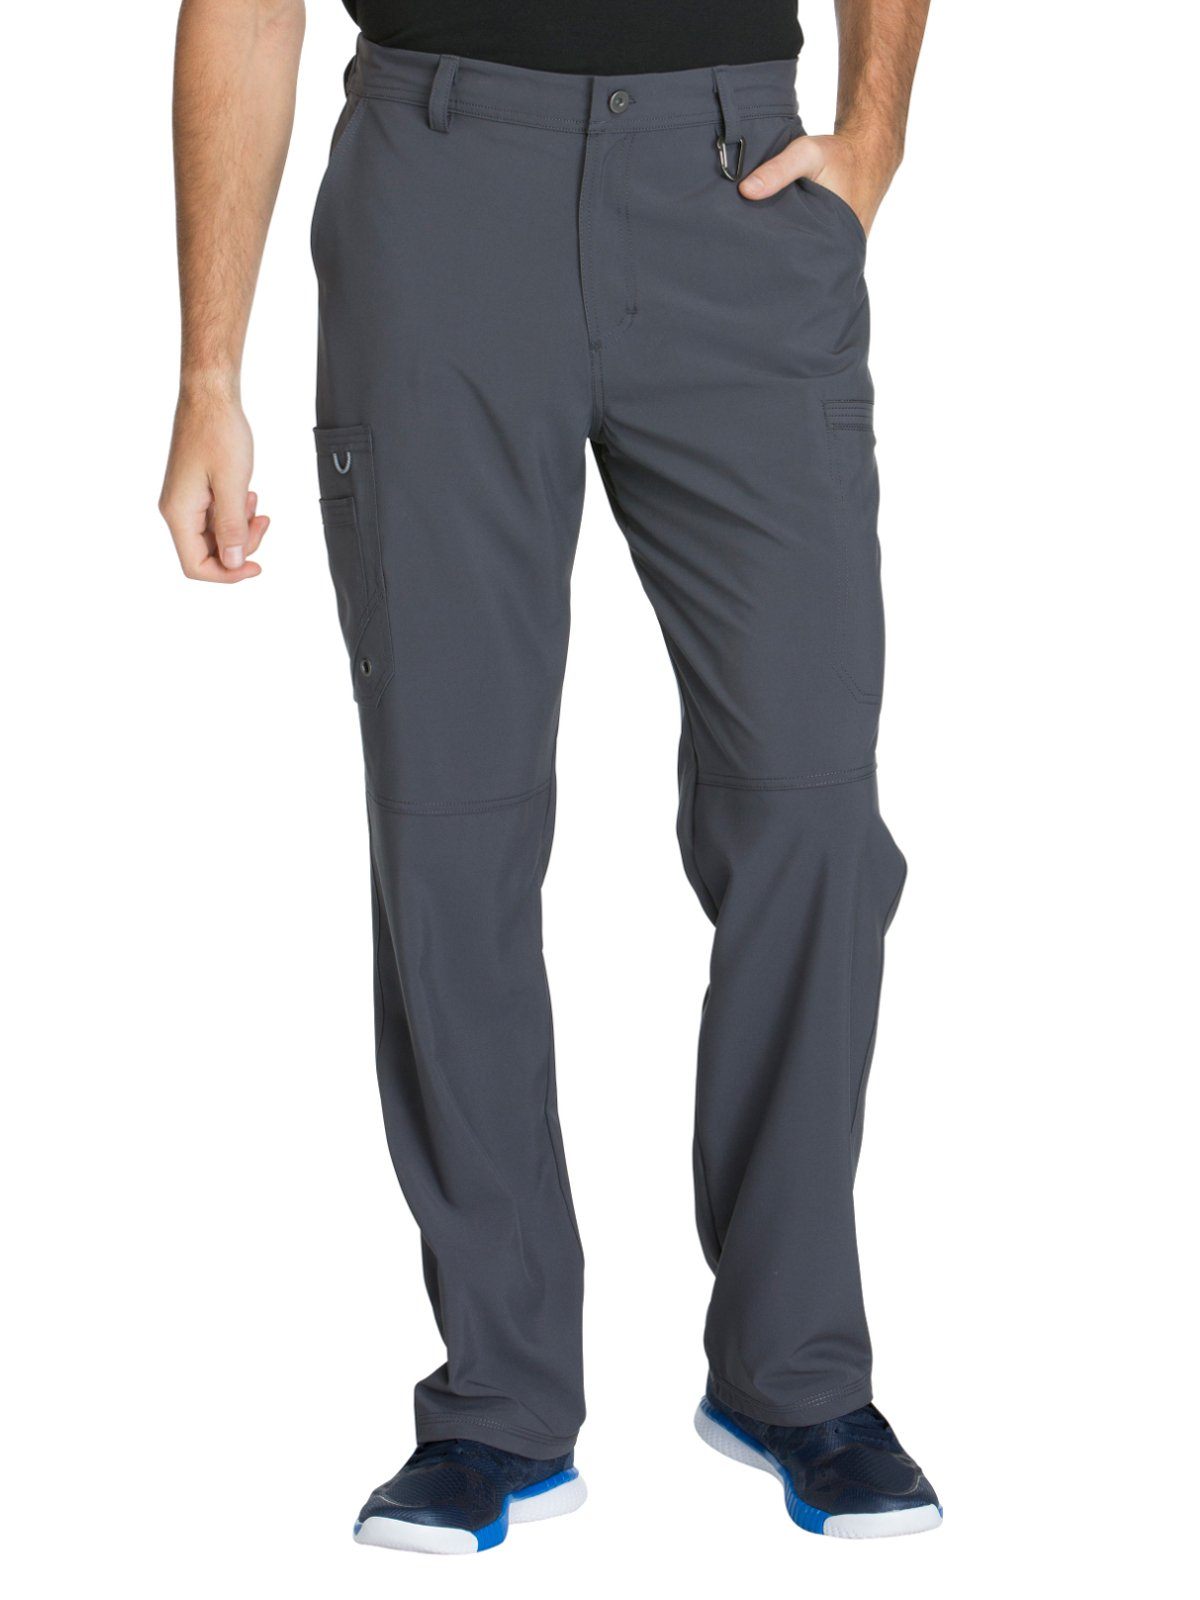 Cherokee Infinity CK200A Men's Fly Front Cargo Pant Pewter 2XL Short